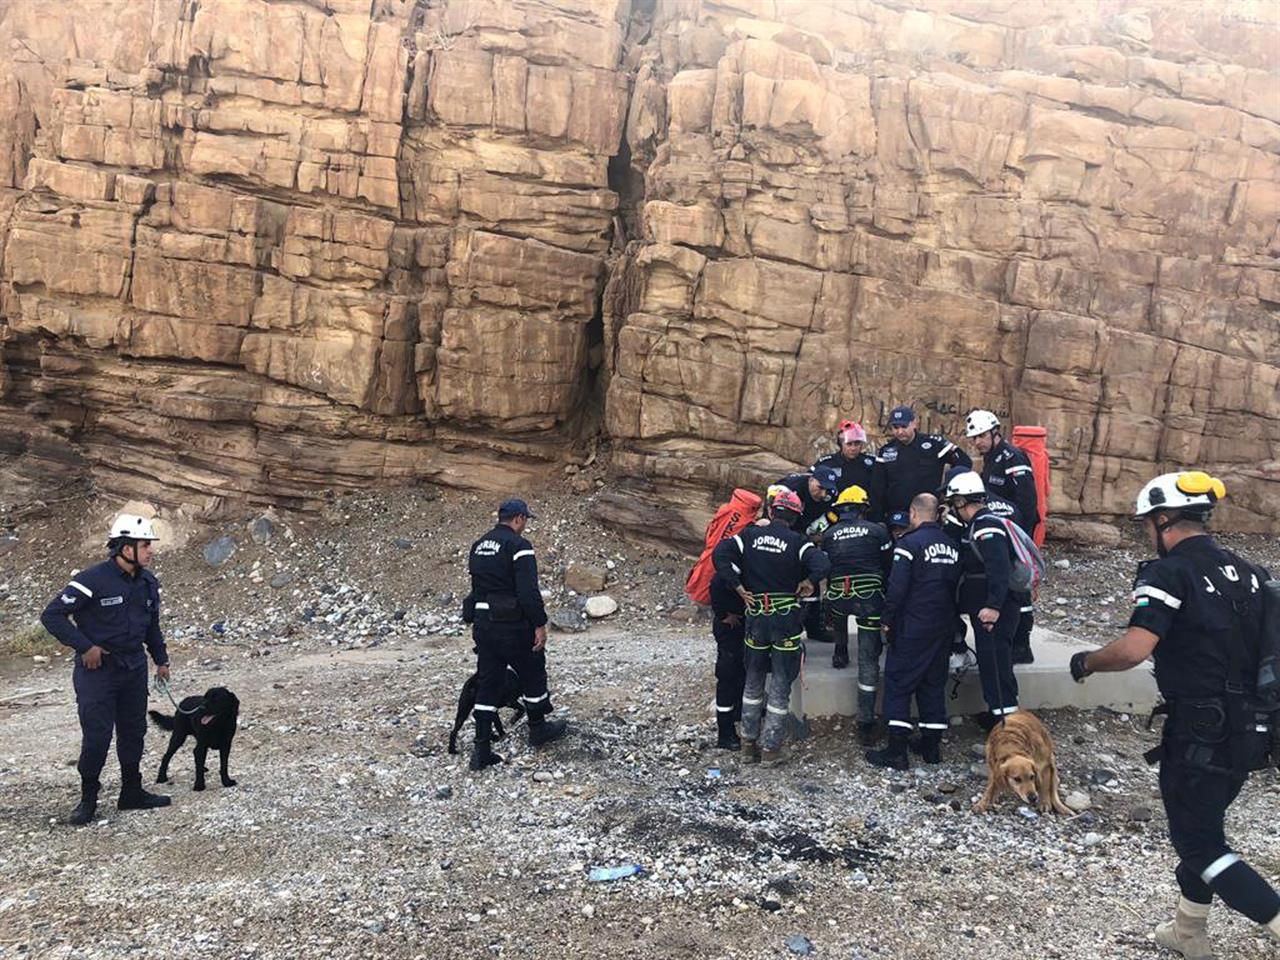 premier helicopters with Death Toll In Jordan Flood Rises To 19 As Girls Body Found on Avenger Weapon System further glaciersouthernlakes co also Tanalianaviation in addition John Krasinski Jack Ryan Amazon 1202881056 together with Realflight 7 5 Winterlink Elite Mode 2 Gpmz4520.